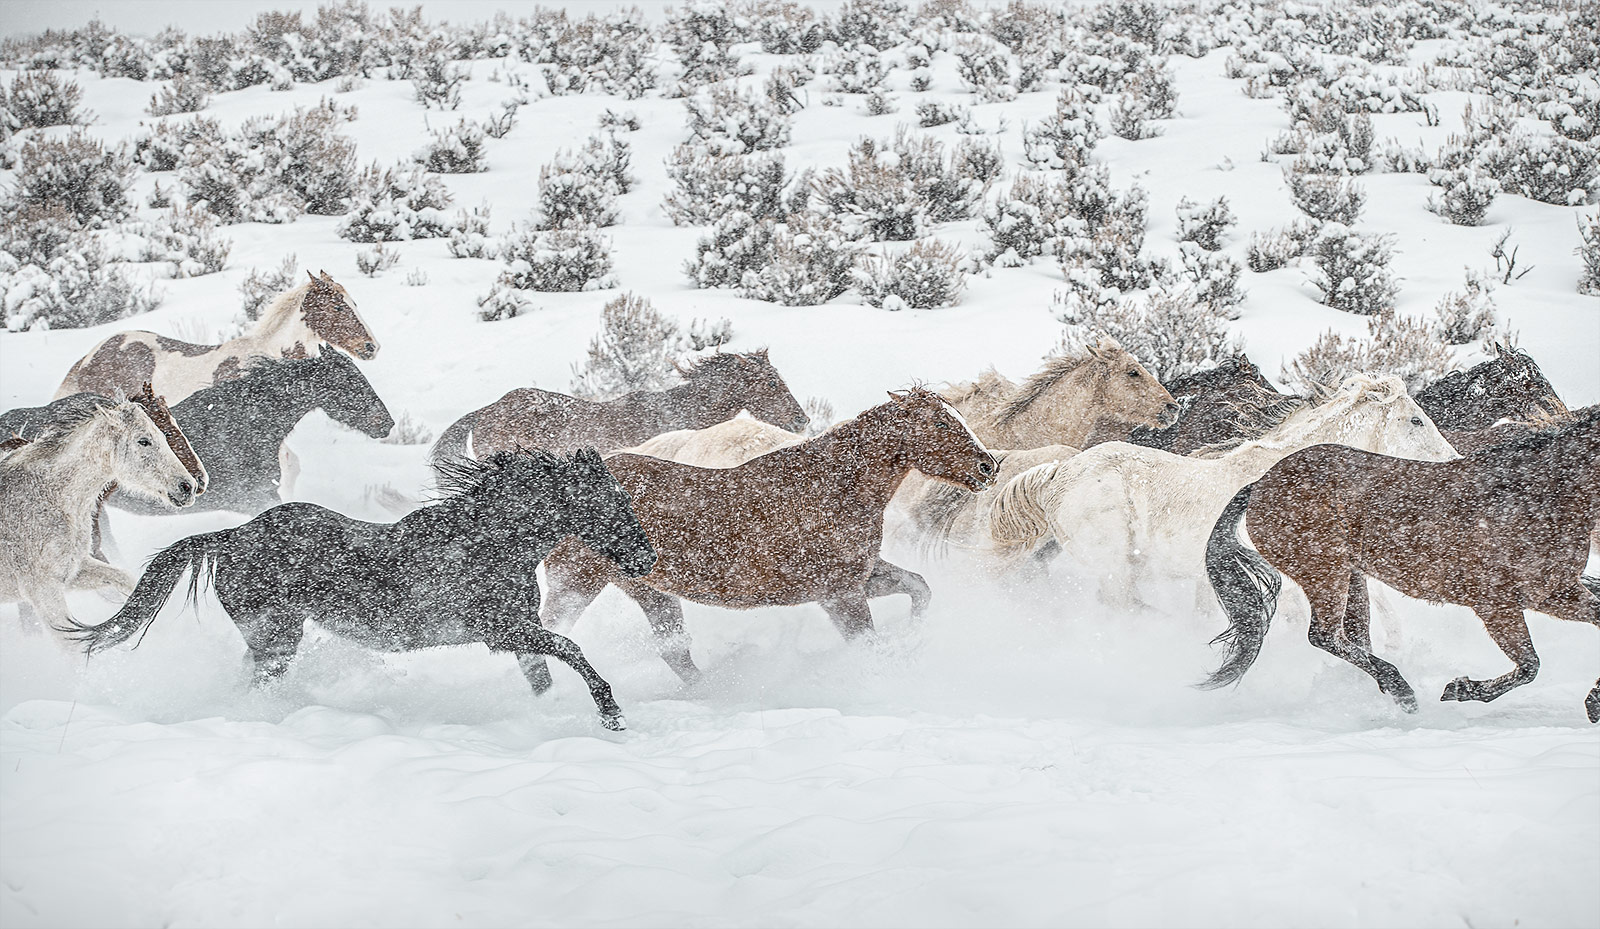 A herd of horses gallops through snow